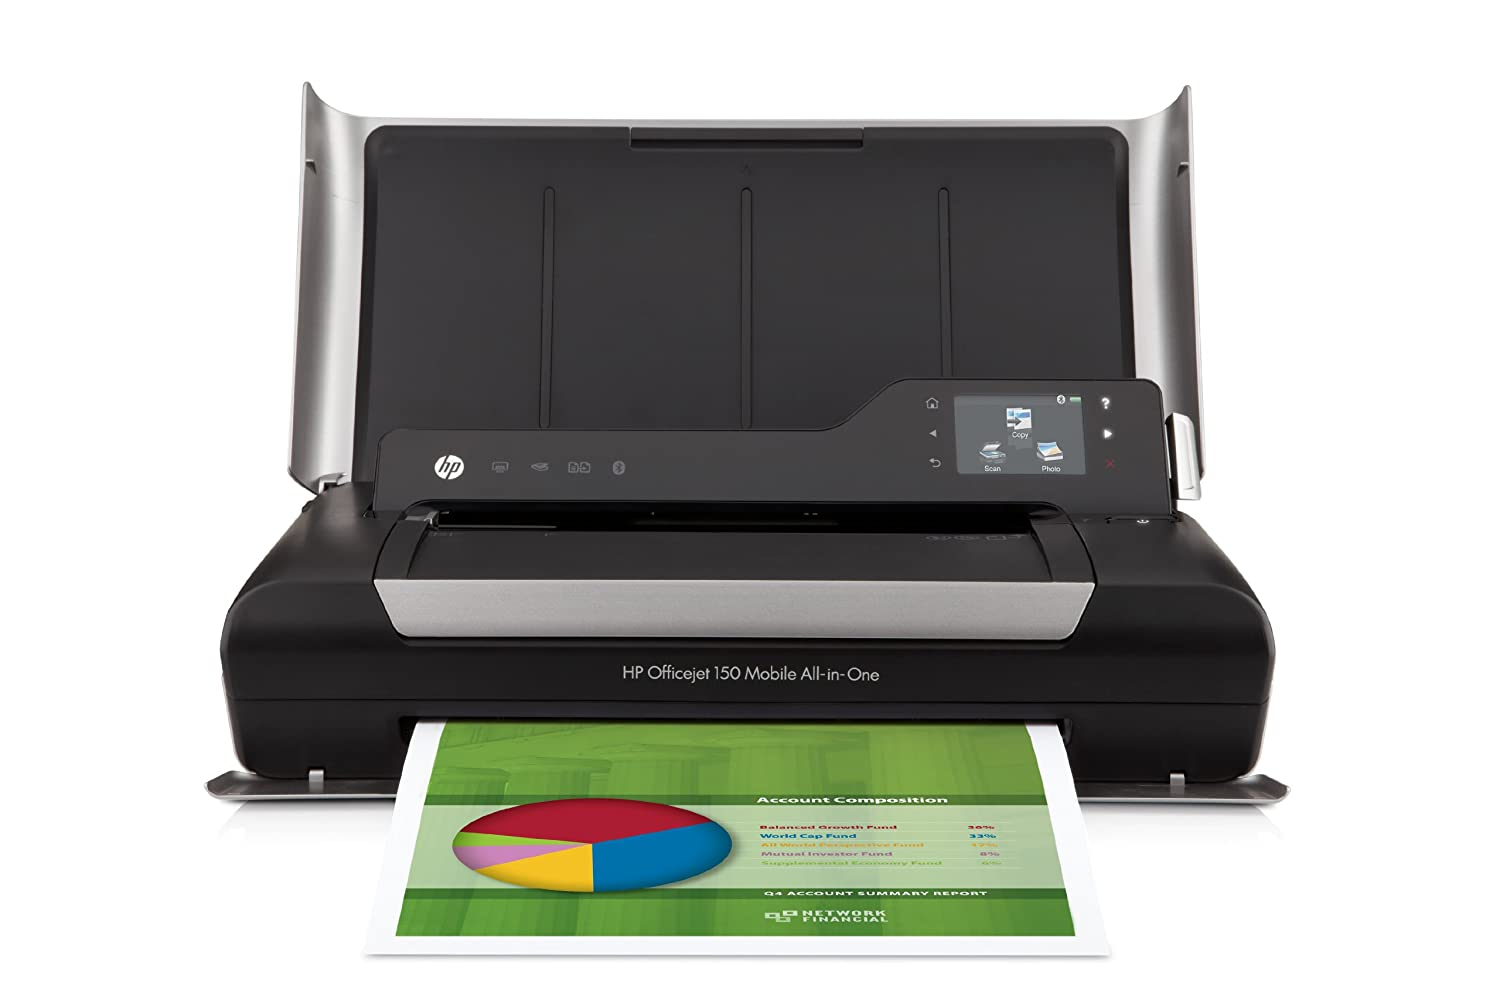 HP OFFICEJET 150 L511 DRIVER WINDOWS 7 (2019)